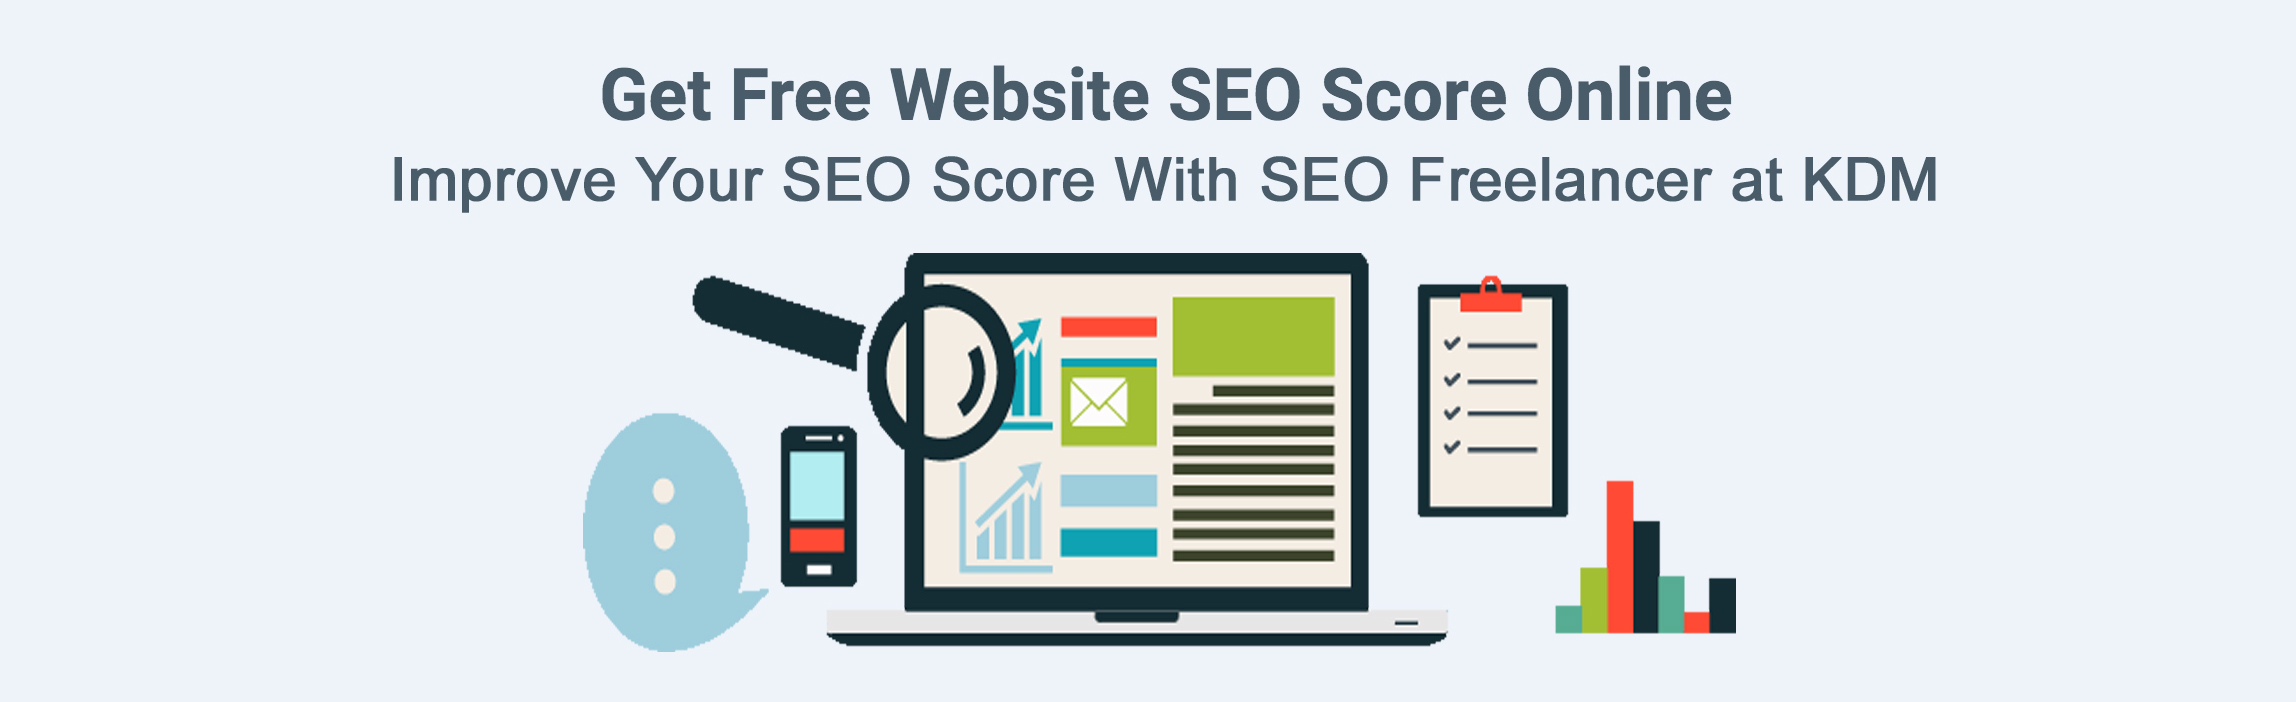 best seo freelancer